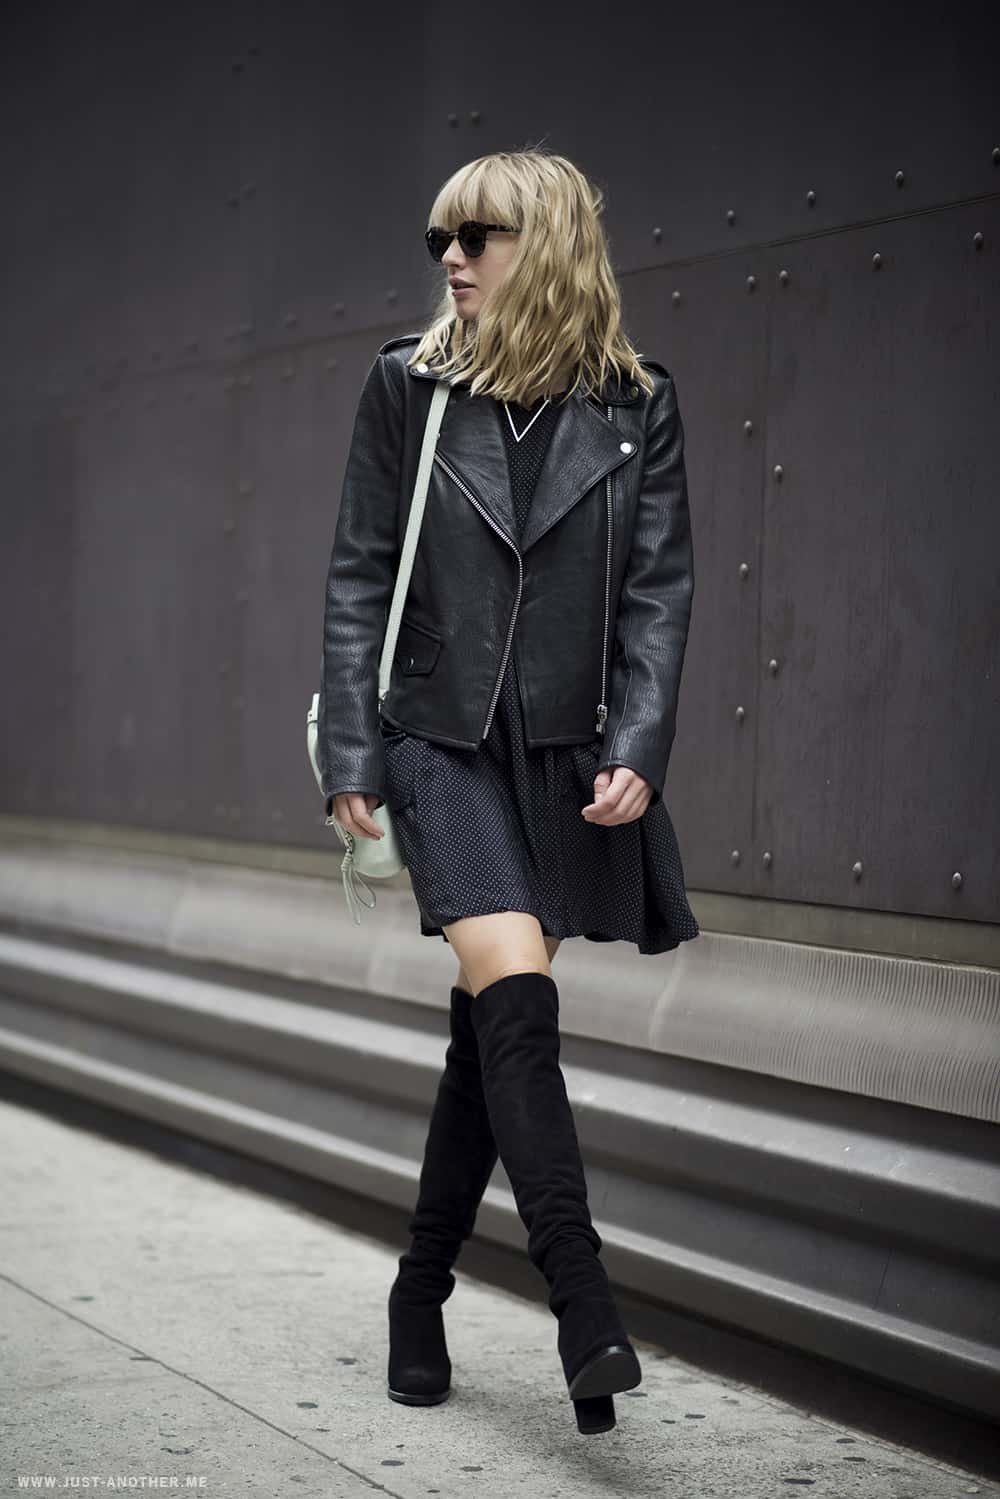 how-to-wear-thigh-high-boots-35